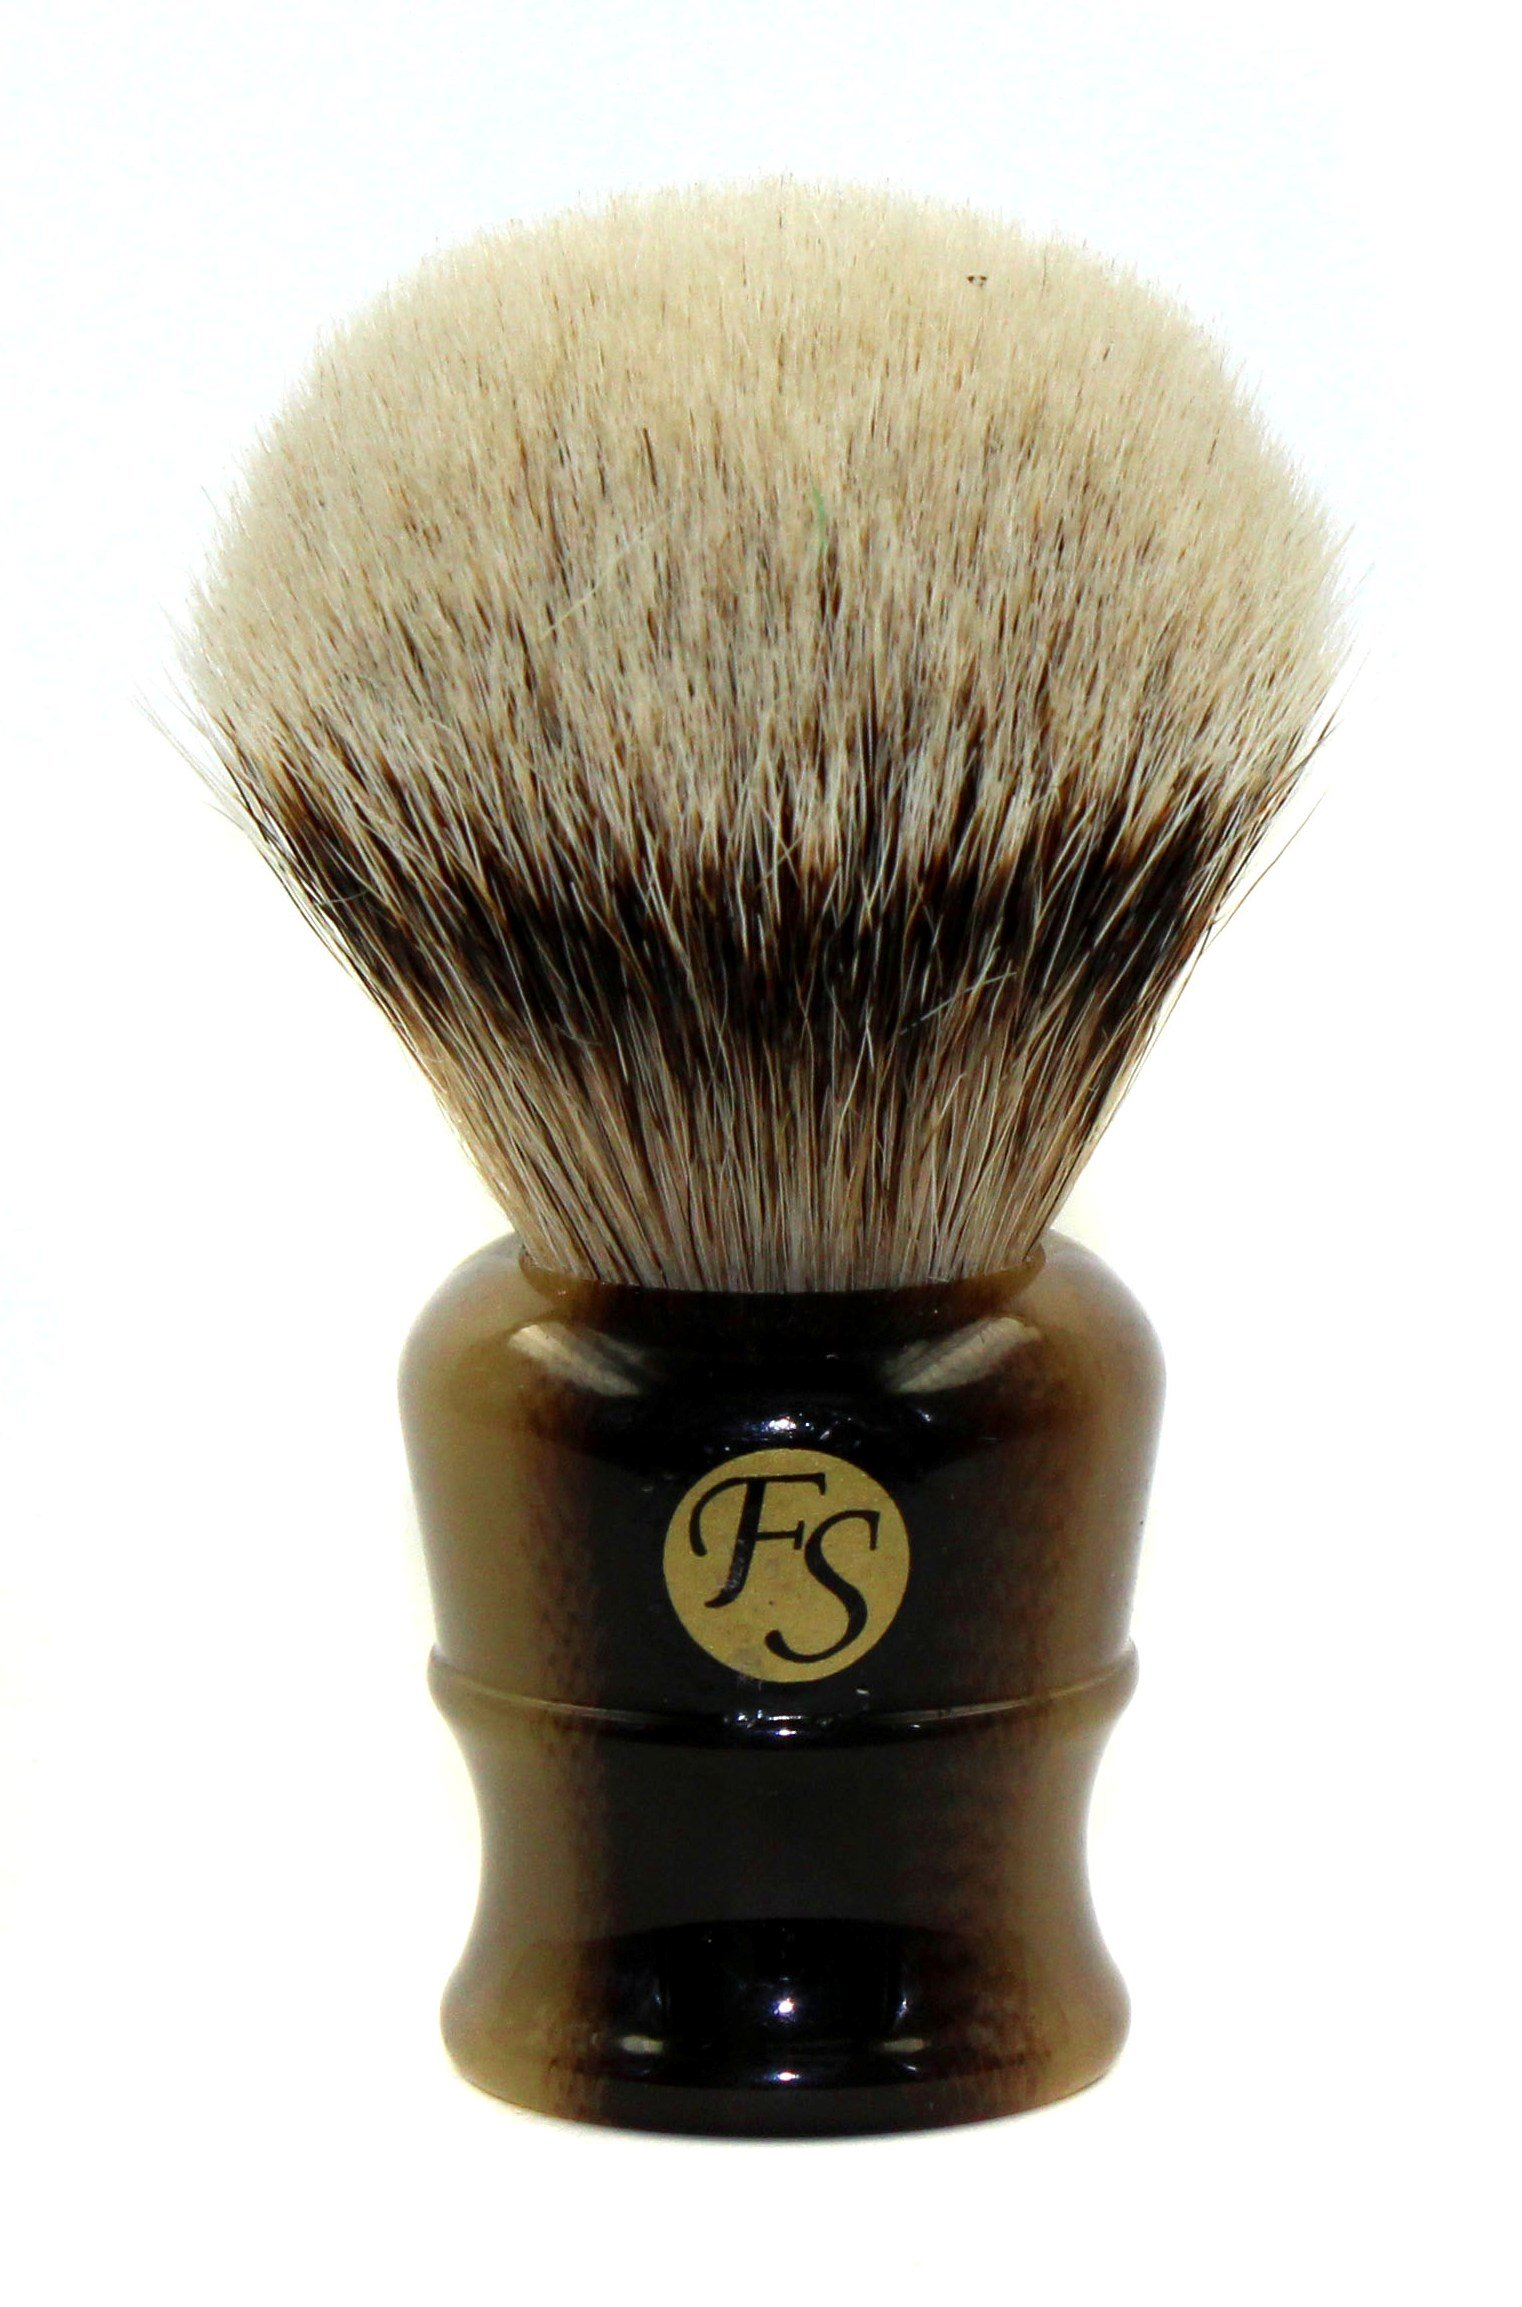 Super Large Silvertip Badger Shaving Brush with Faux Horn Handle Comes with Free Stand